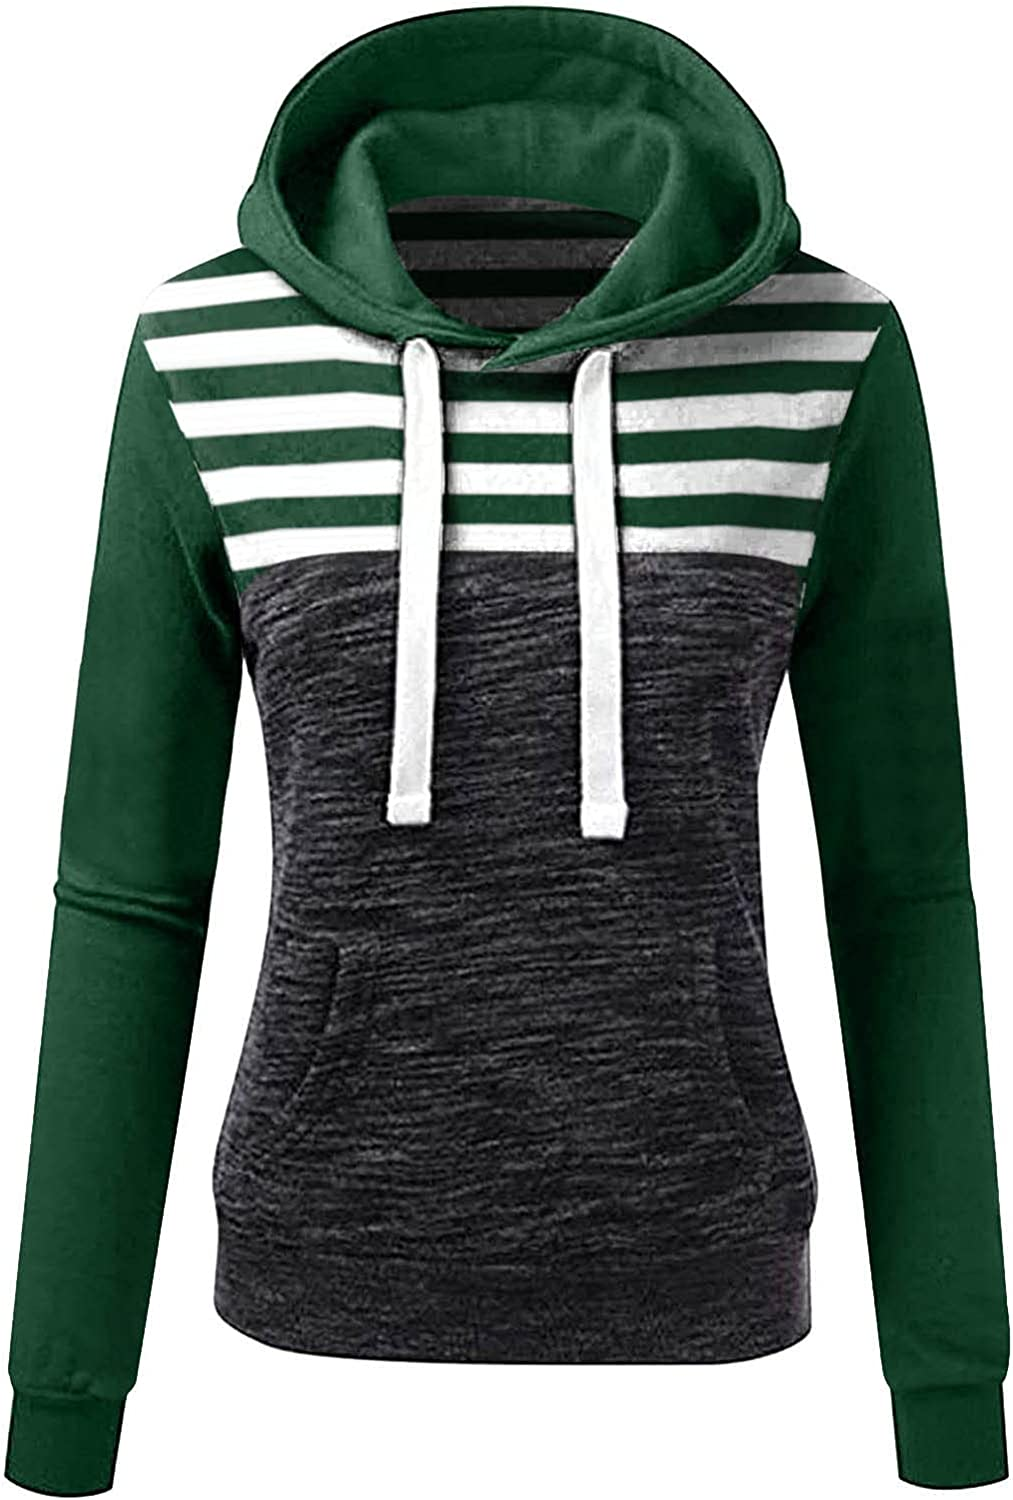 Pandaie Womens Striped Hoodies Fashion Casual Pullovers Autumn and Winter Pocket Sweatshirt Vintage Daily Jacket